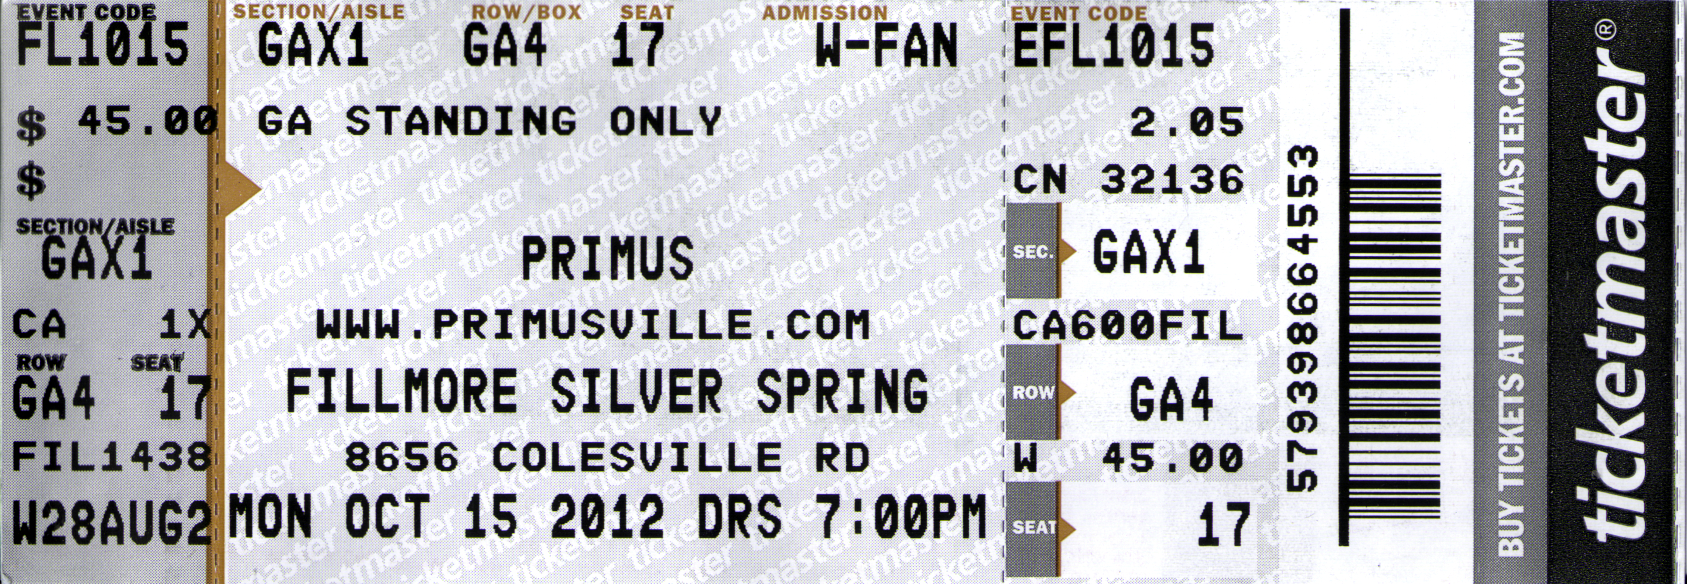 20121015 - Primus at The Fillmore - ticket stub